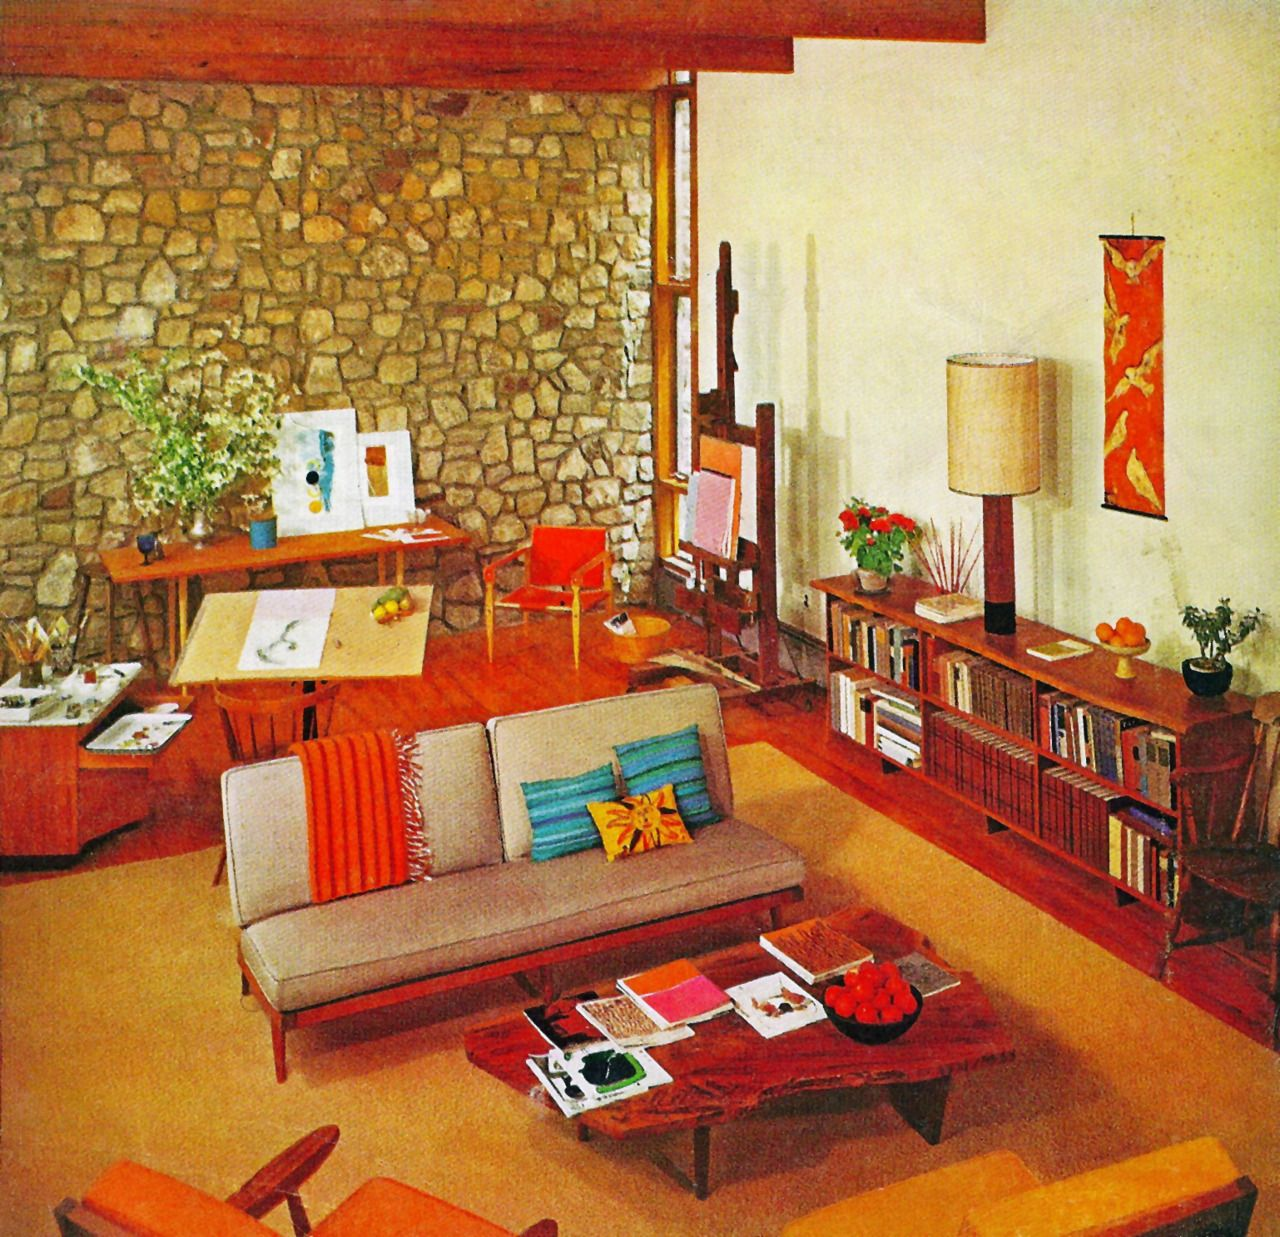 The fantasy decorator the retro decorator 1967 living room for the home rooms textures - Awesome home interiors decorations in modern setting ...